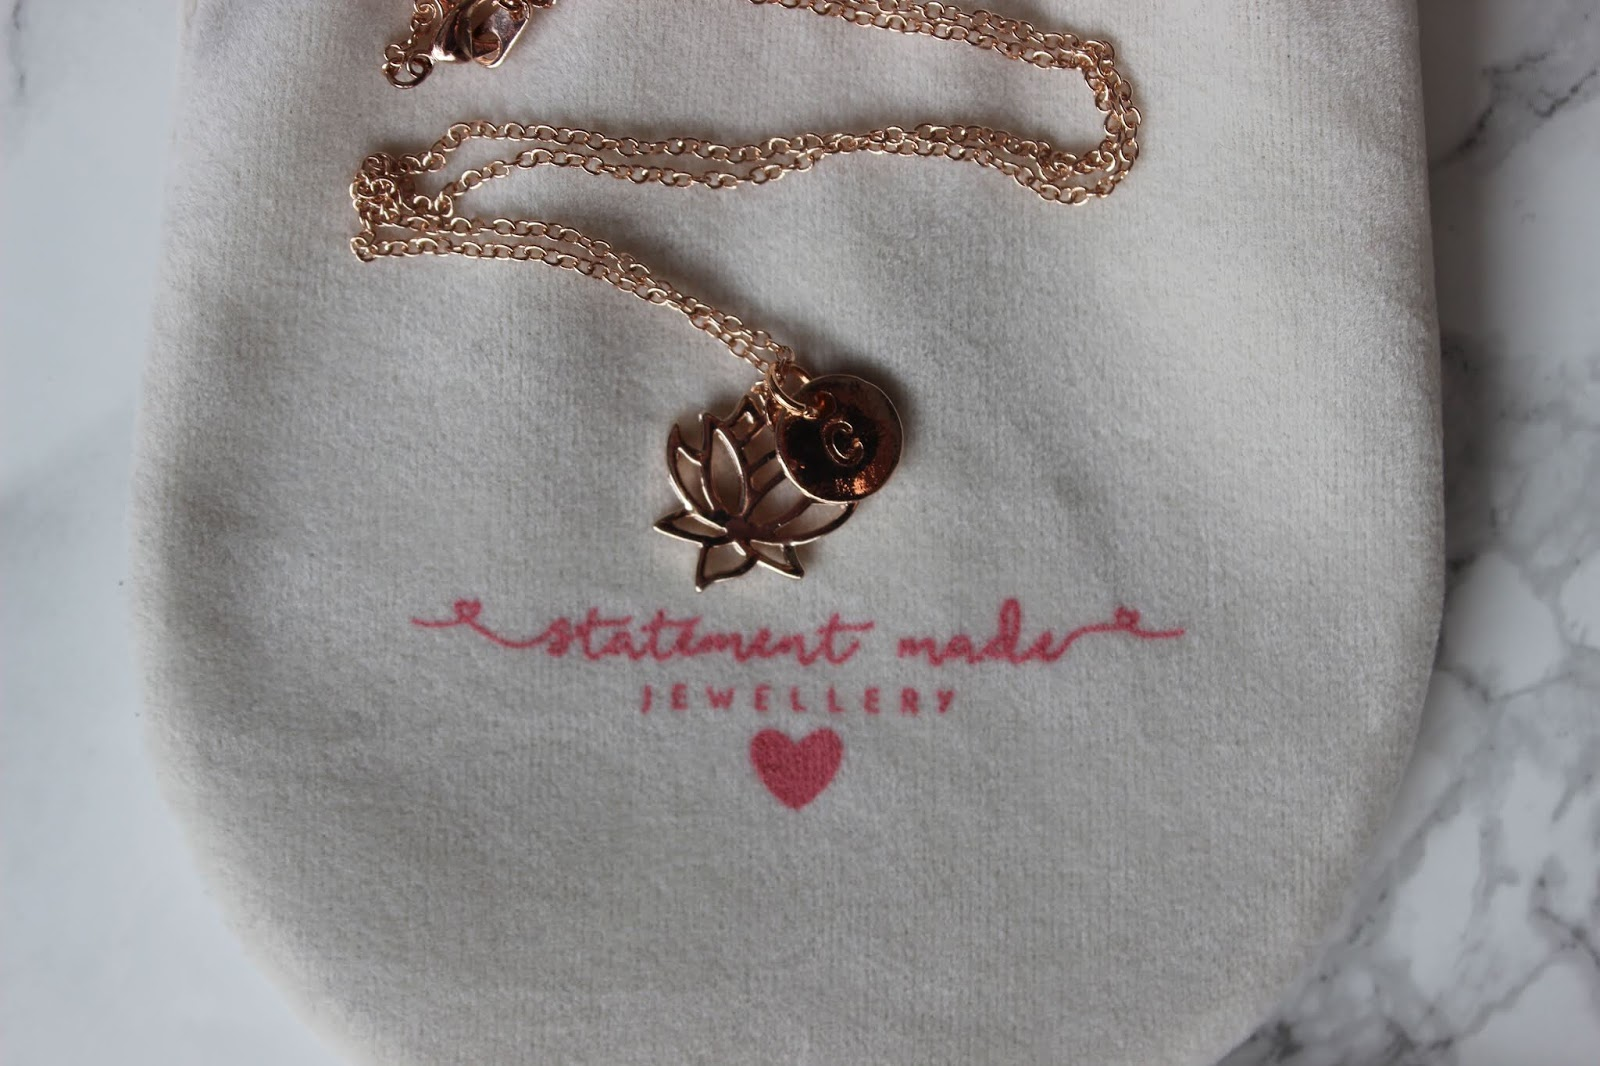 Statement Made Jewellery Personalised Necklace